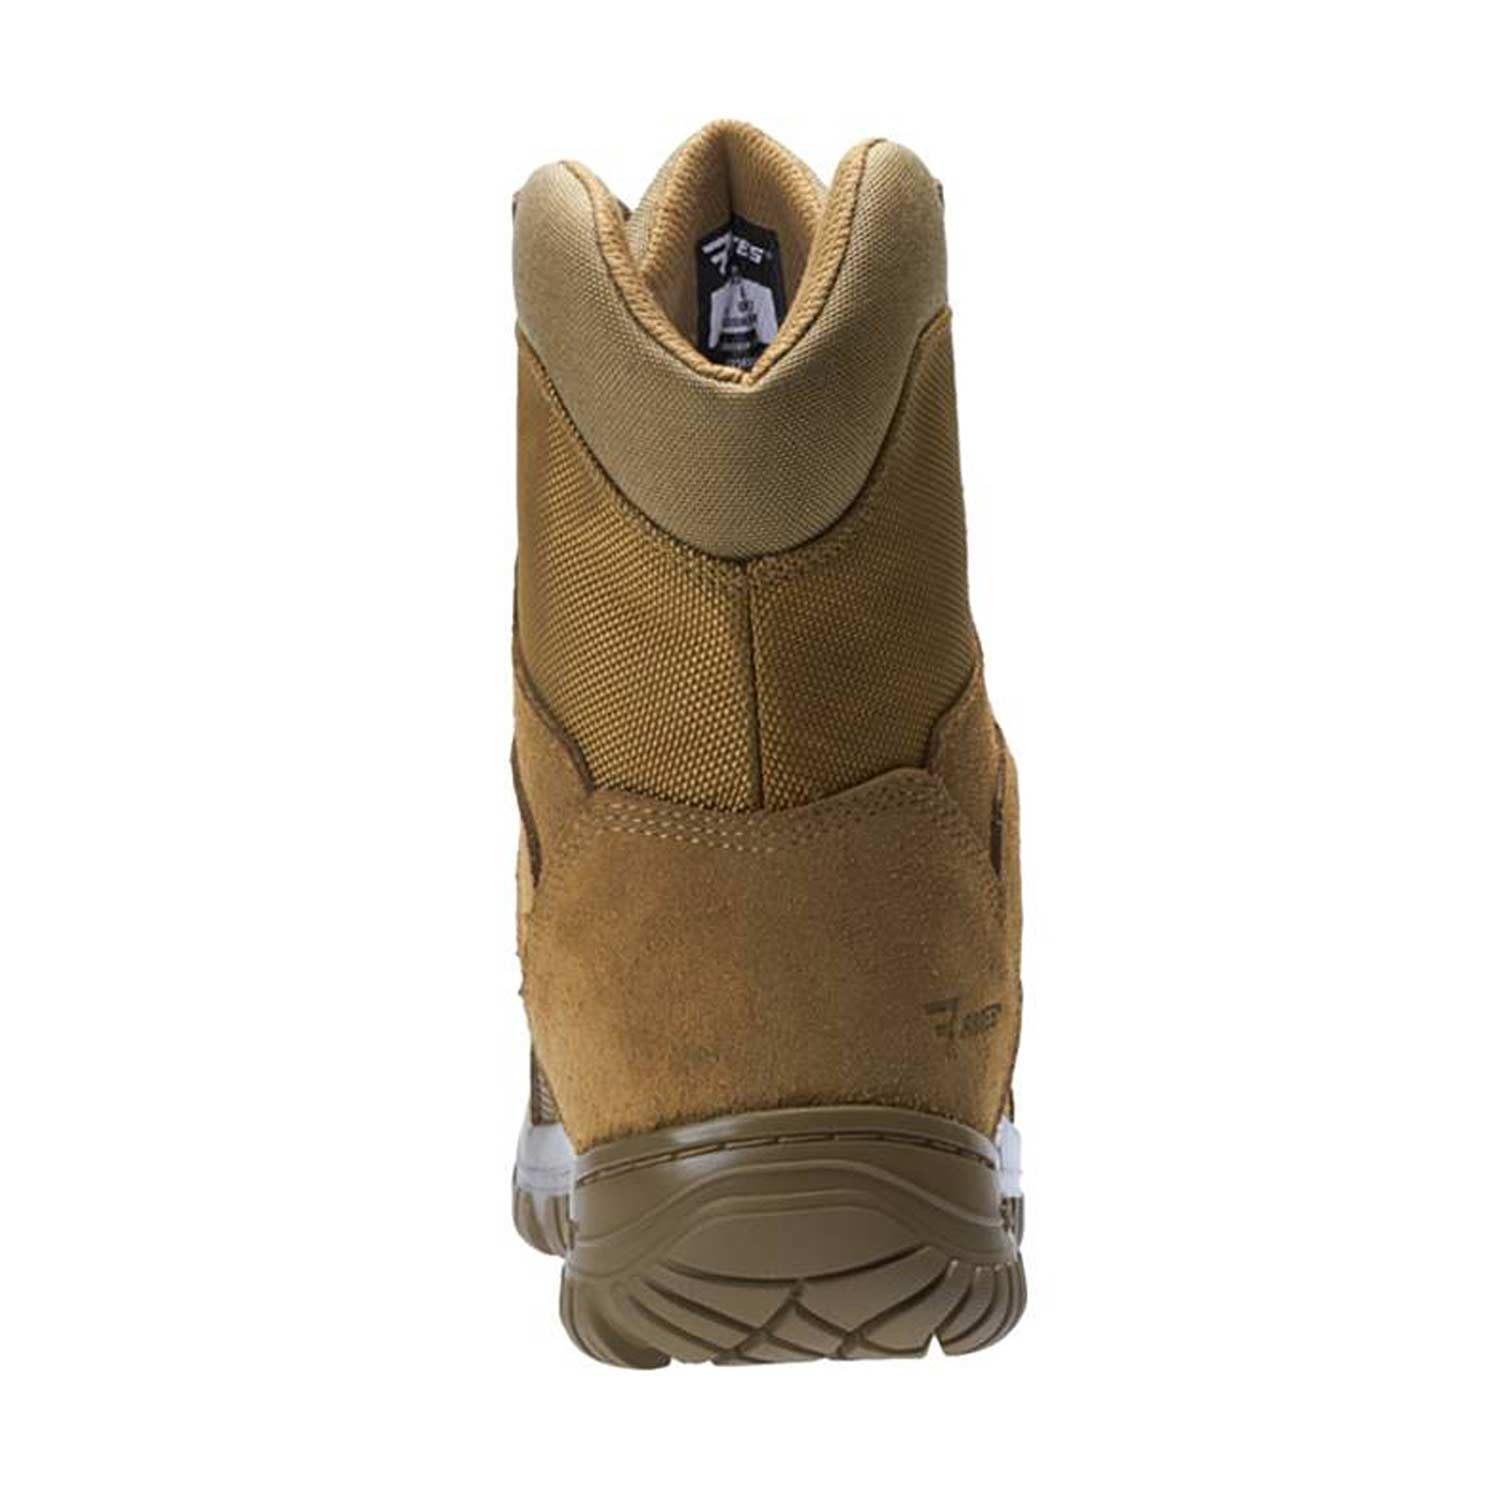 Bates Mens Maneuver Hot Weather Fire and Safety Boot Fire & Safety Boots  Boots